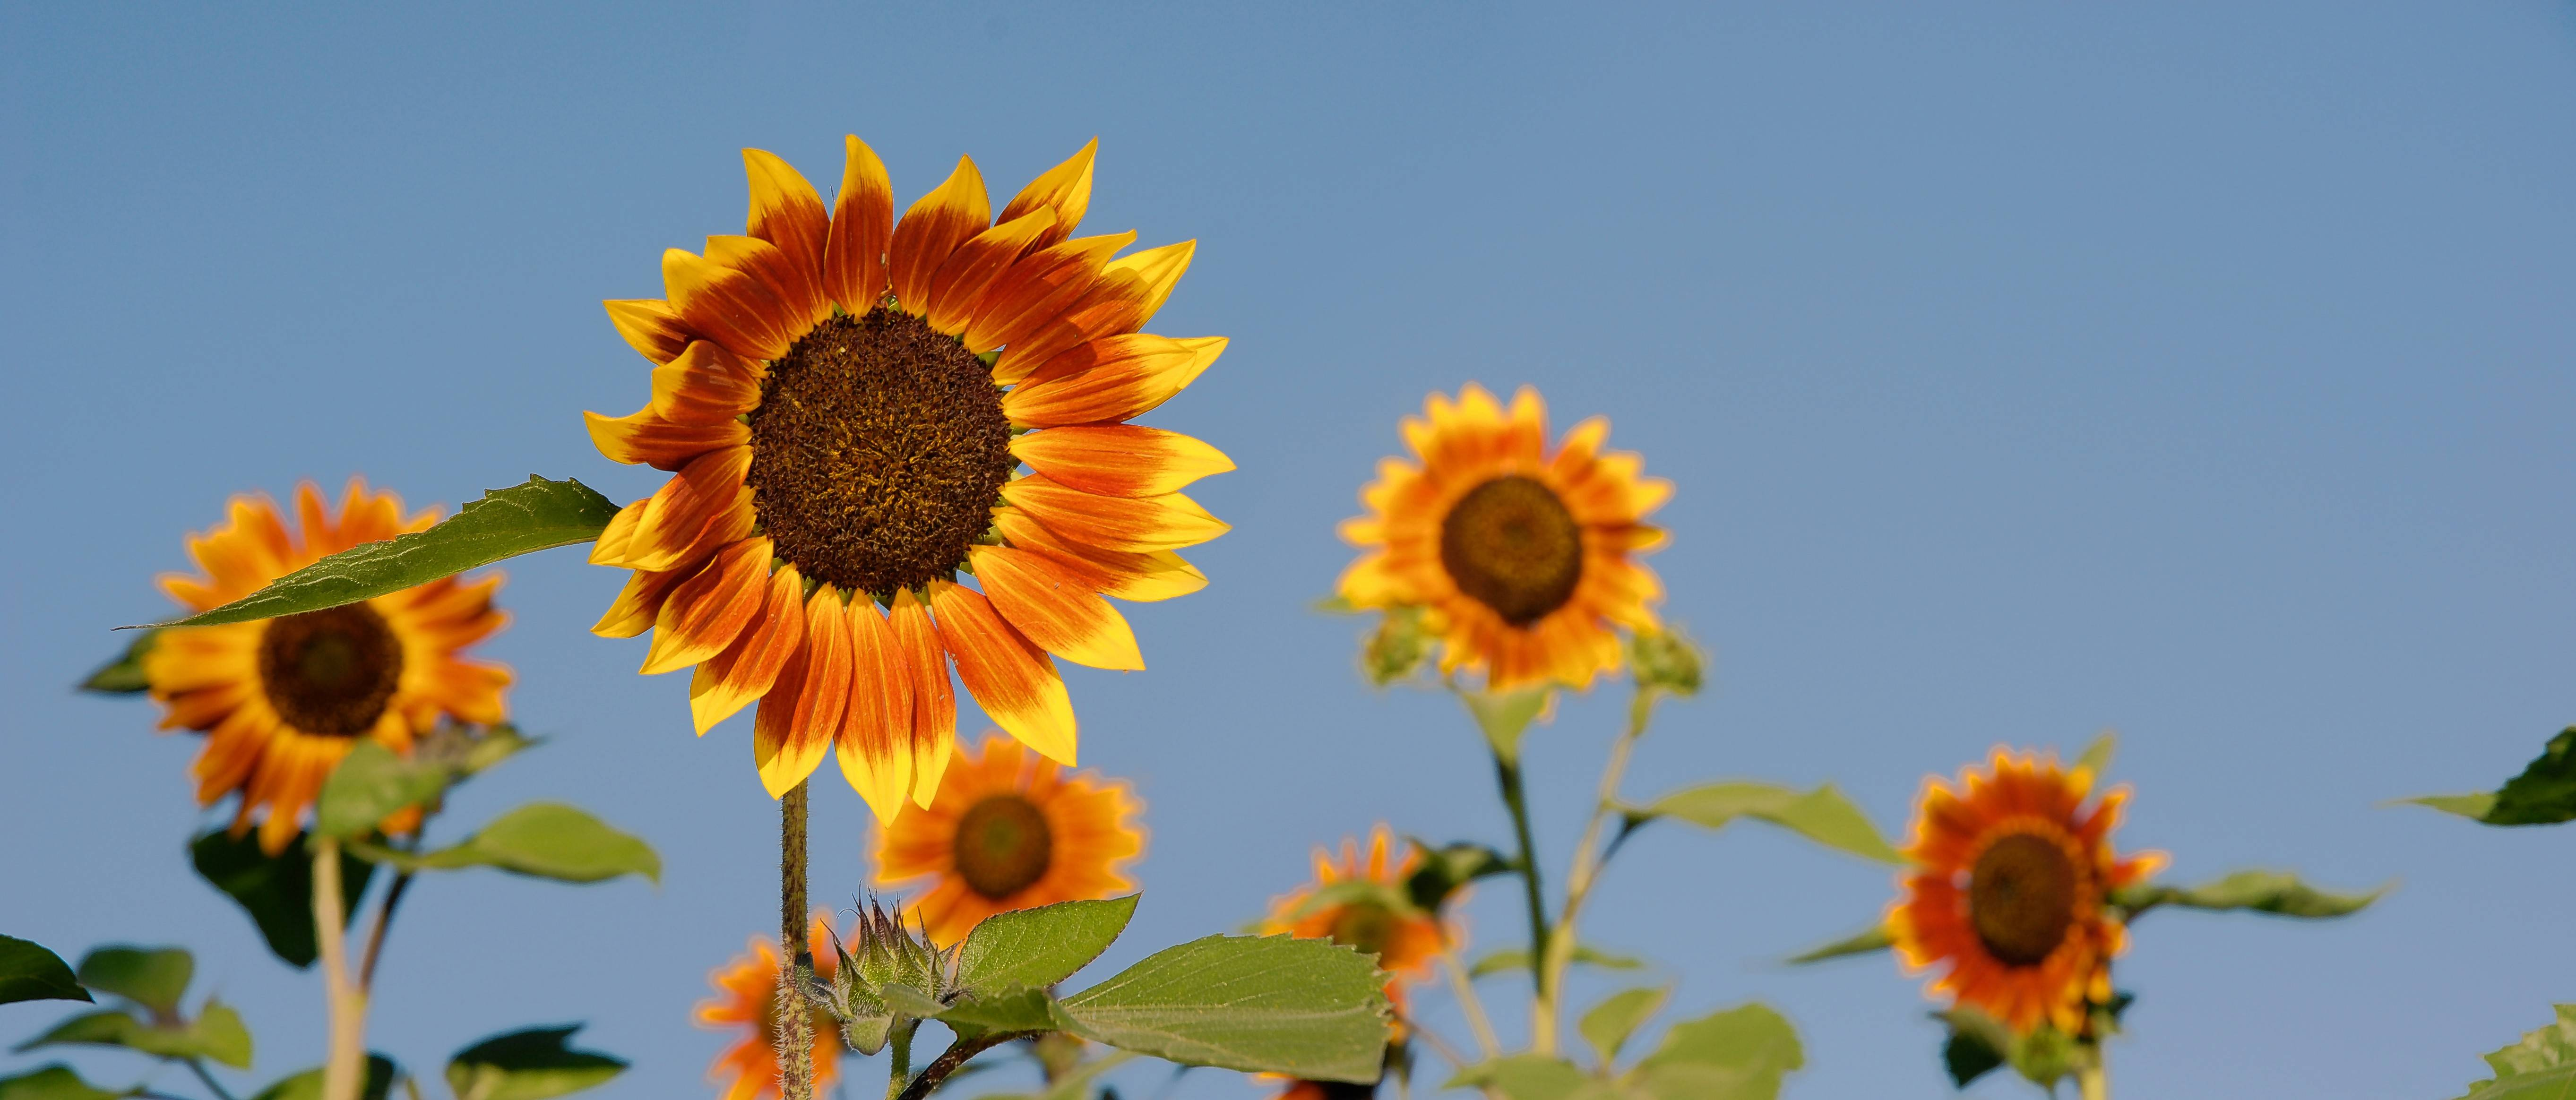 If you want to attract more birds to your yard, consider planting sunflowers this spring.